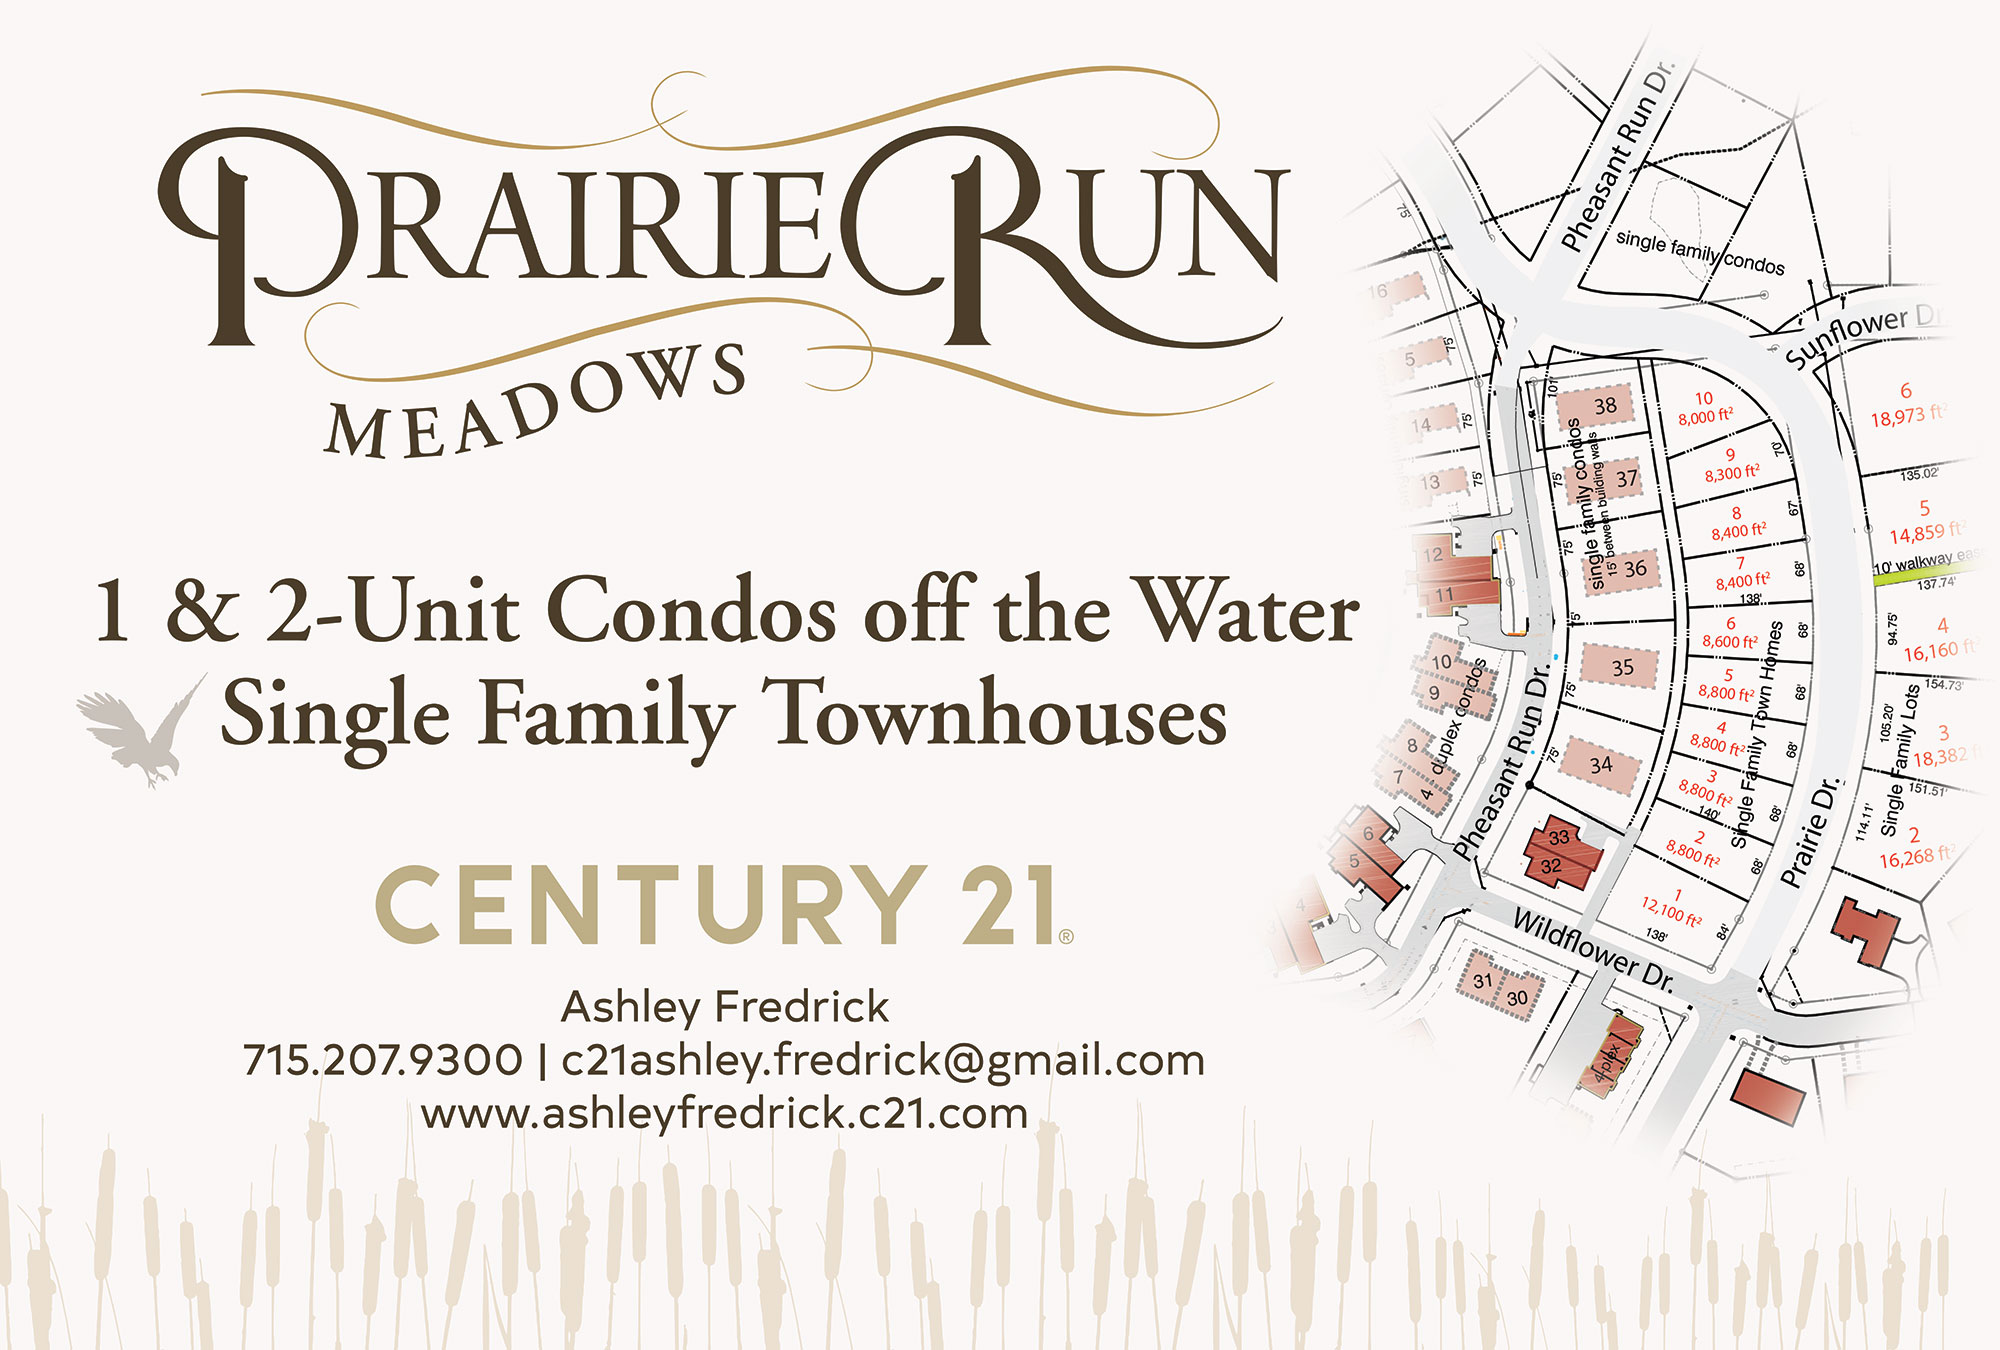 Prairie Run Meadows existing infrastructure and lot map. Off the water 1 & 2 unit condominiums and single family townhouses